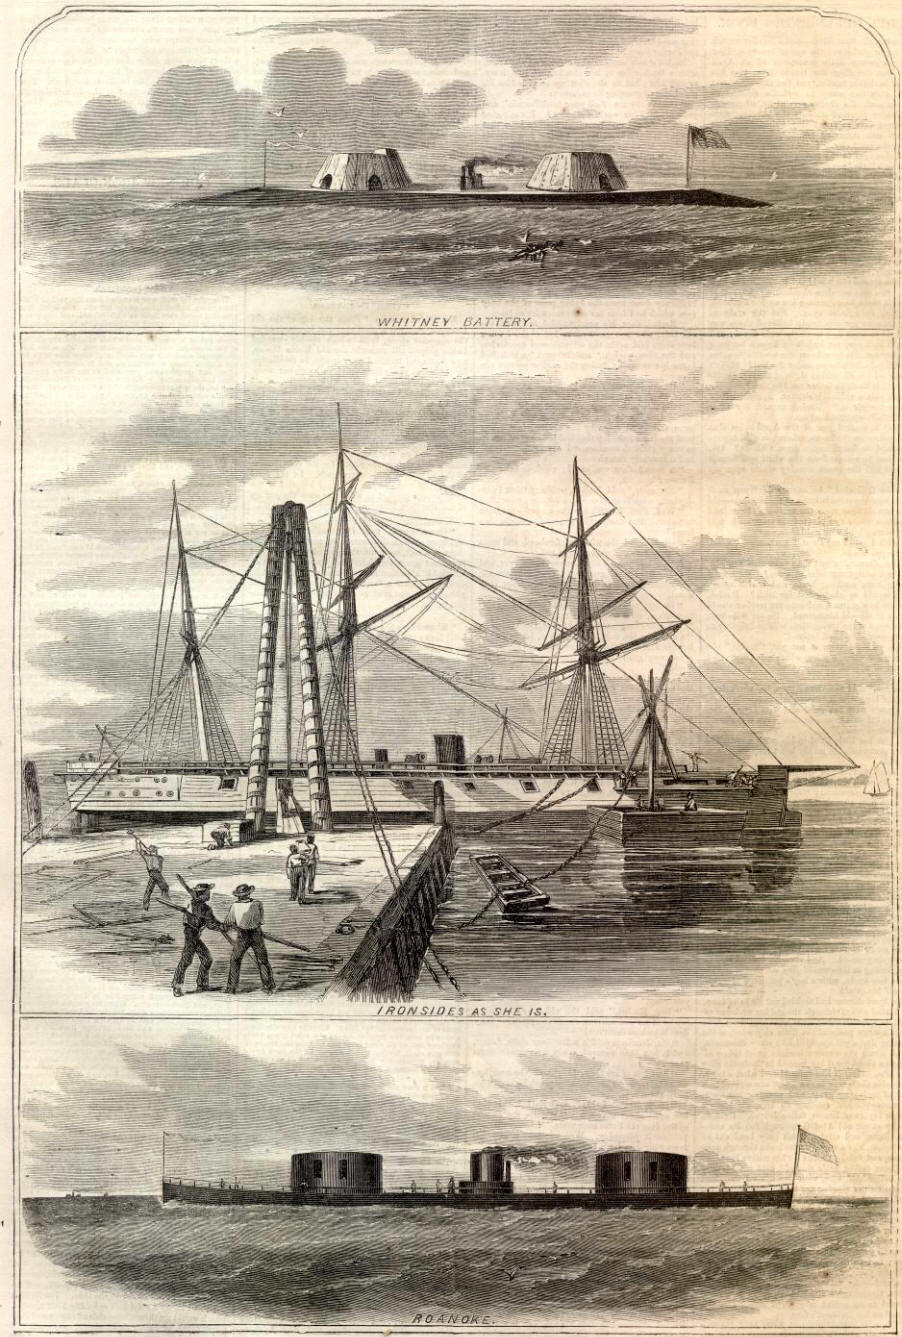 the ironclads in the oceans of the civil war All the us coastal monitors of the civil war presented generally the same appearance: a low iron raft with one or more turrets on deck, and little, if any, superstructure these ships were intended solely for operations in sheltered coastal waters two were sunk when open ocean passages were attempted.